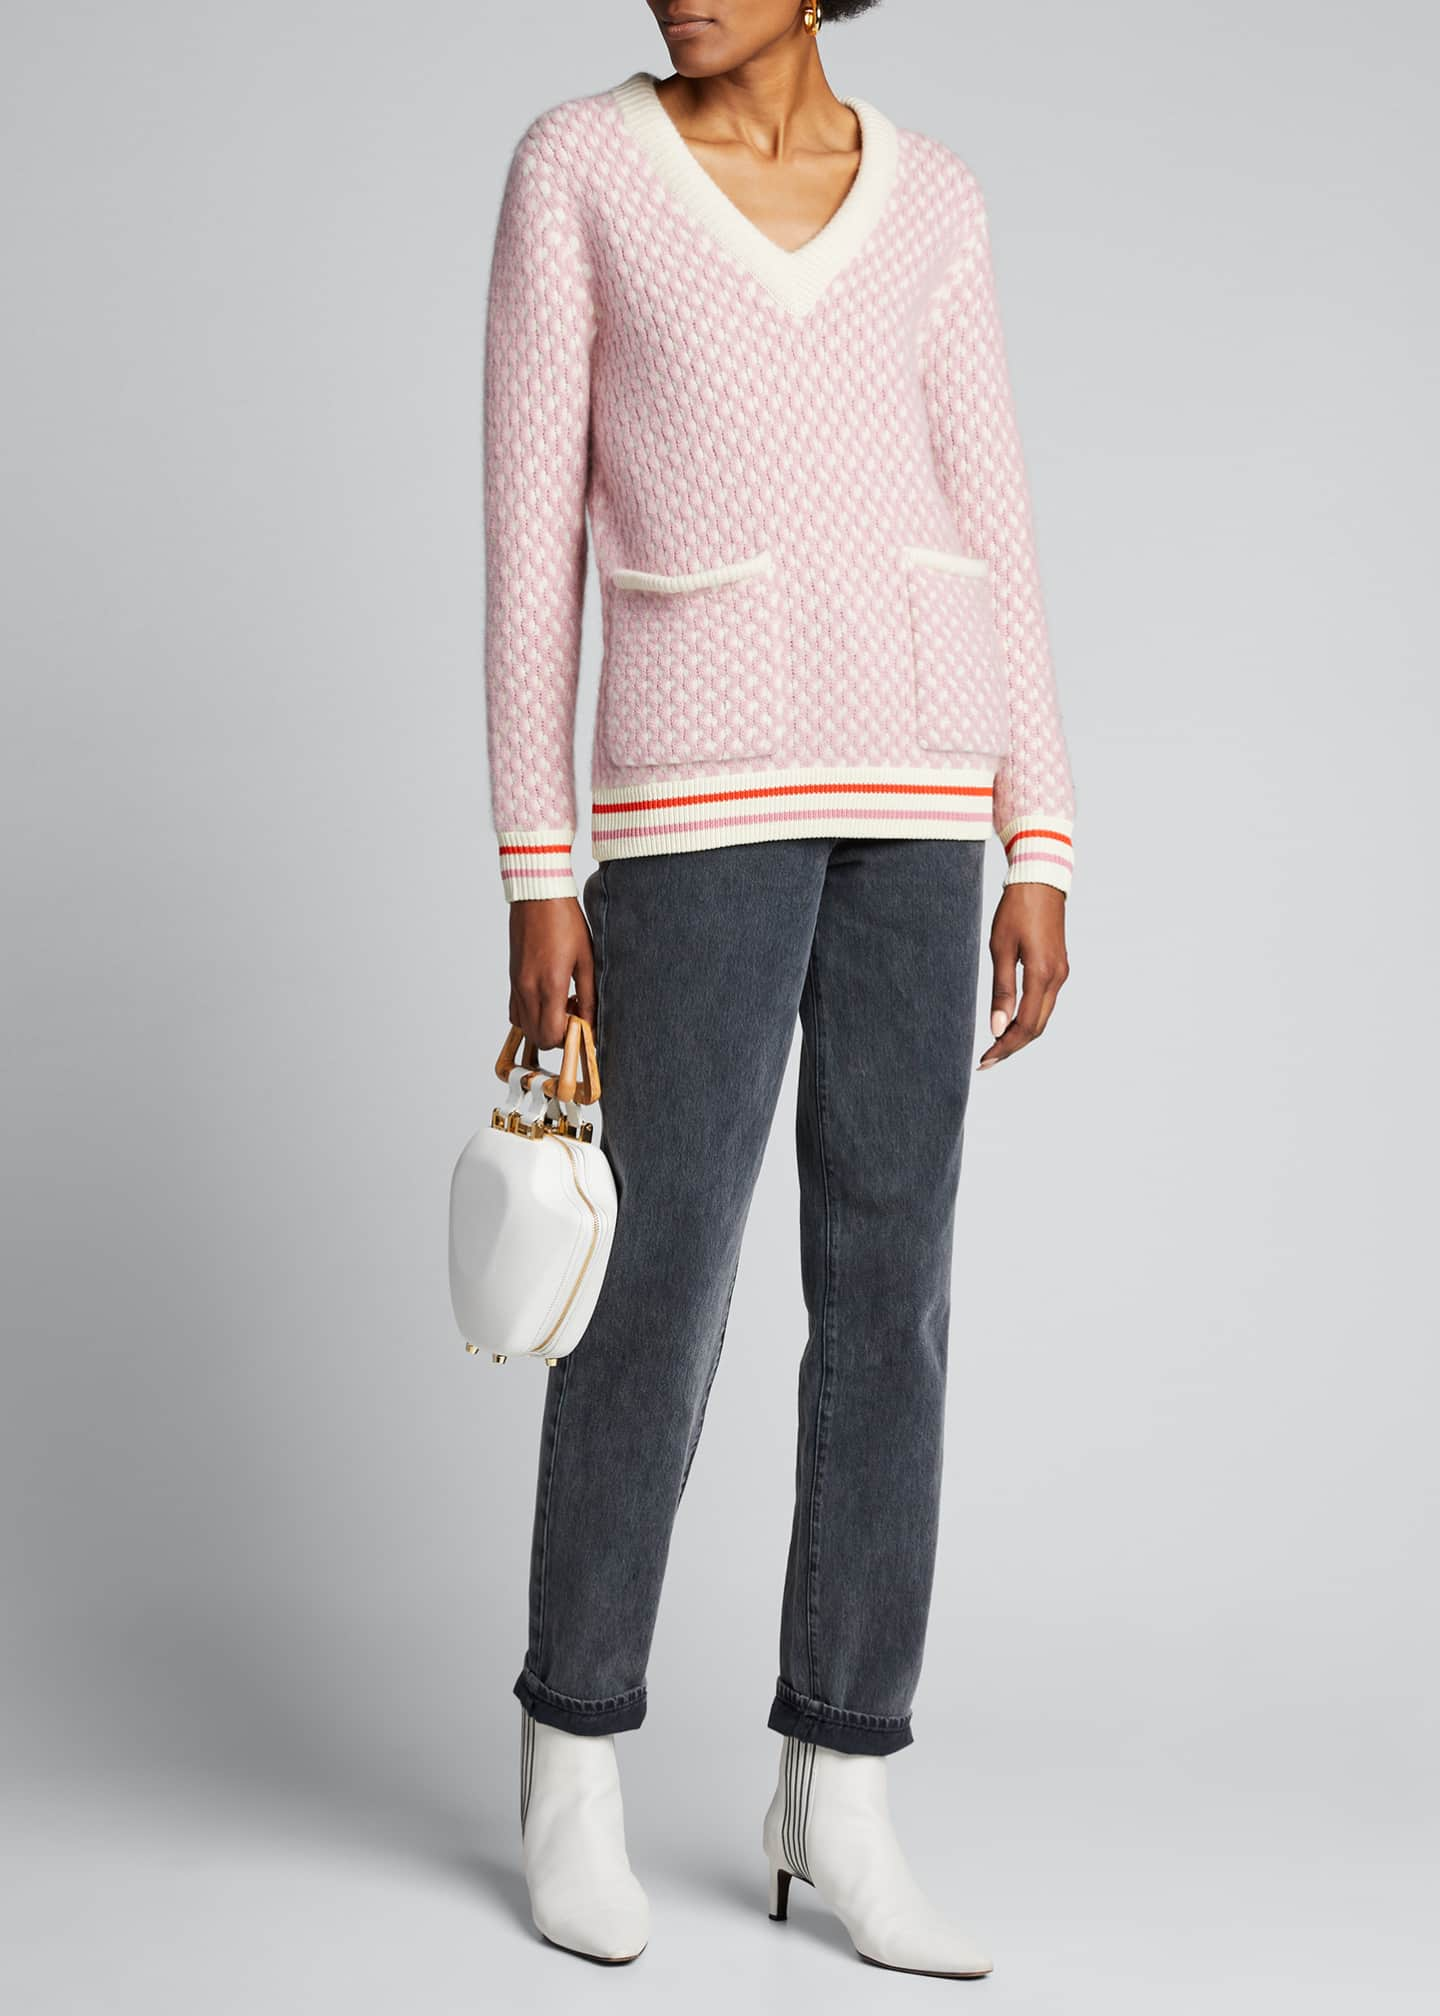 Kule The Shelby Patch-Pocket Pullover Sweater